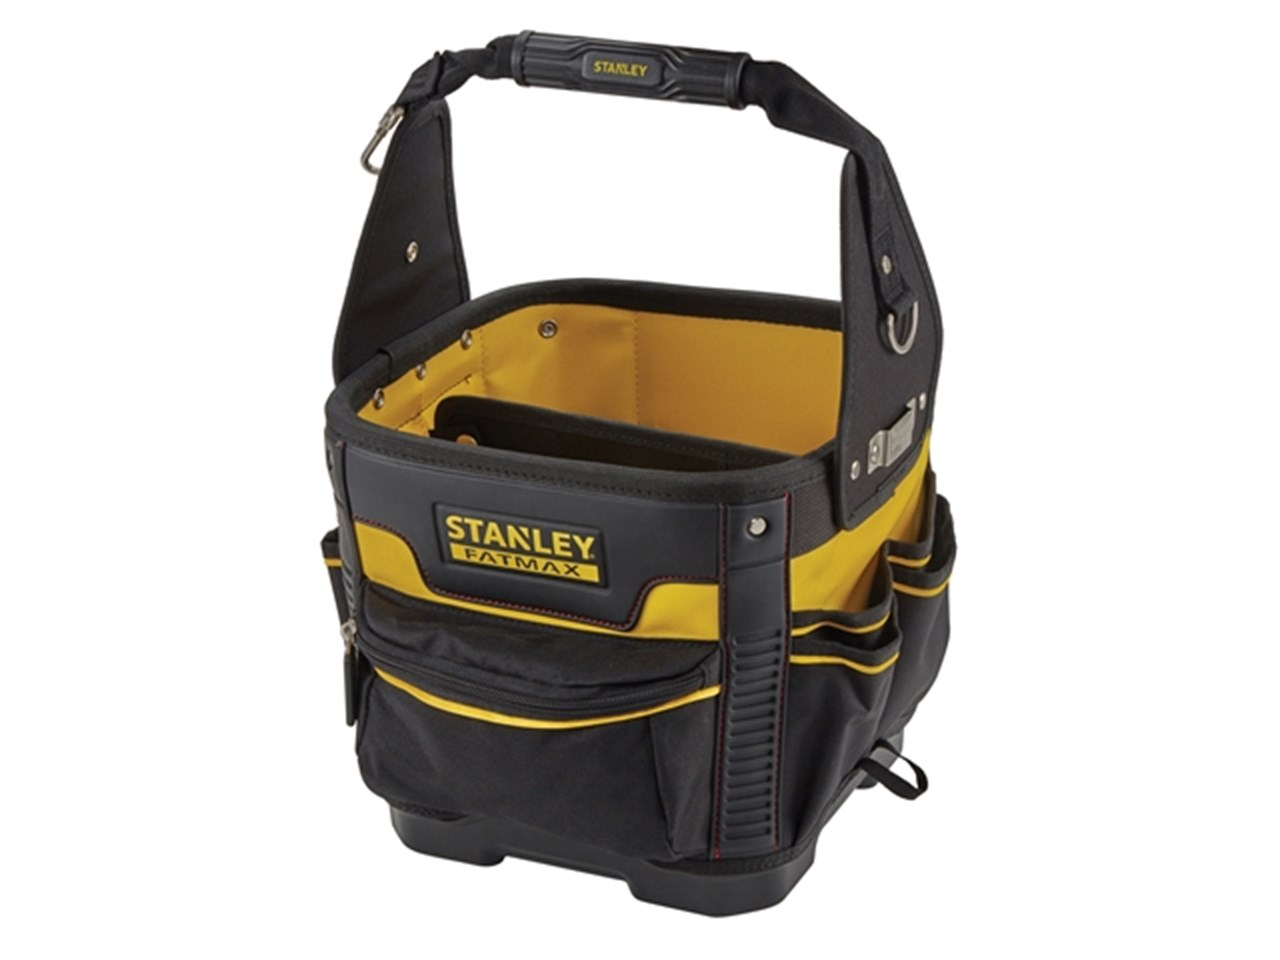 stanley sta193952 fatmax technicians toolbag. Black Bedroom Furniture Sets. Home Design Ideas